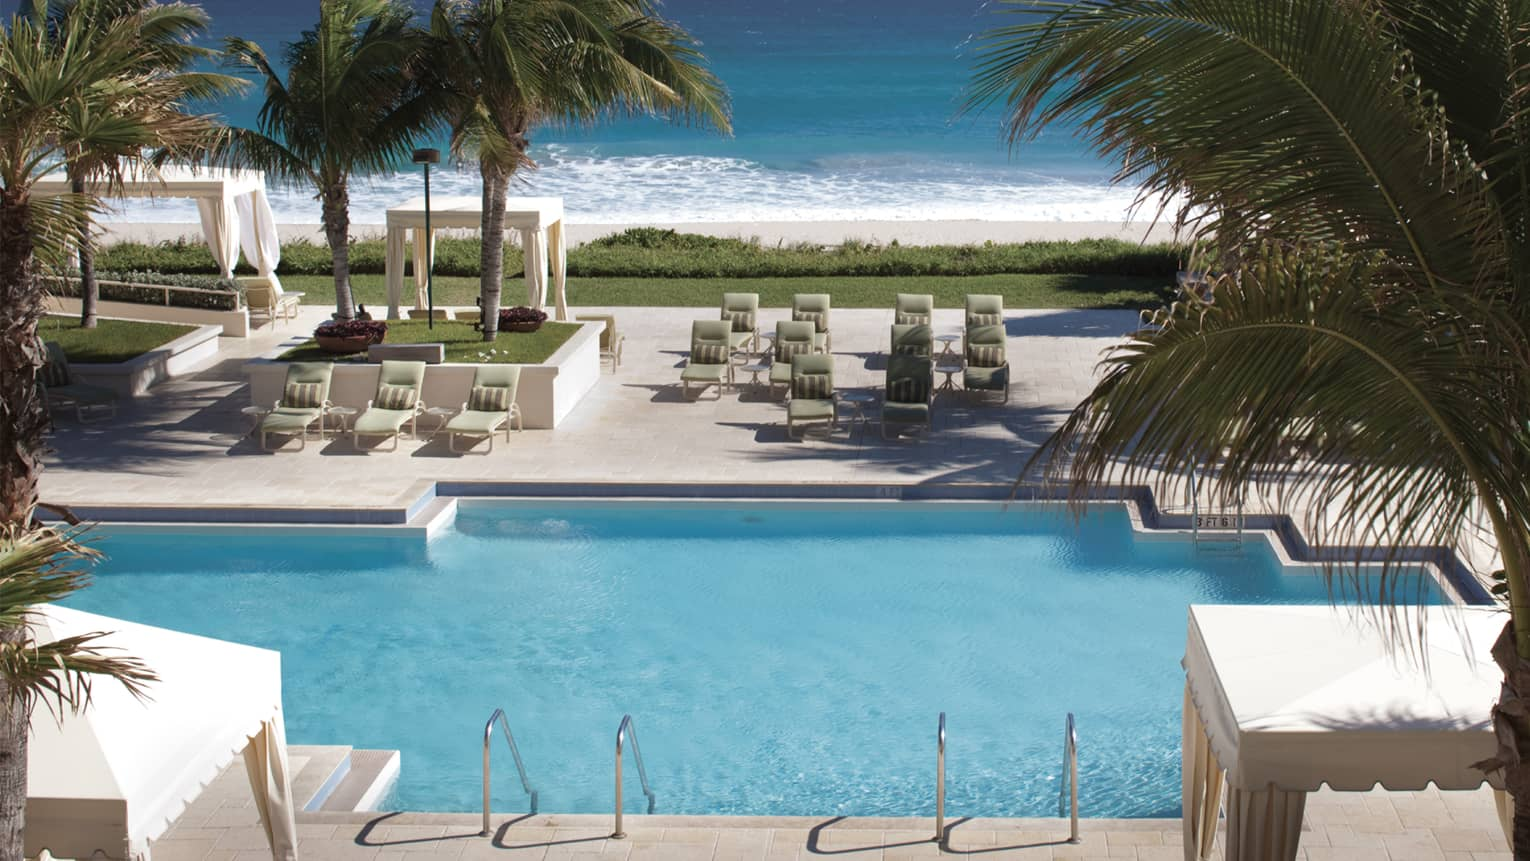 Heated outdoor pool surrounded by palm trees, white cabanas and lounge chairs, ocean in view